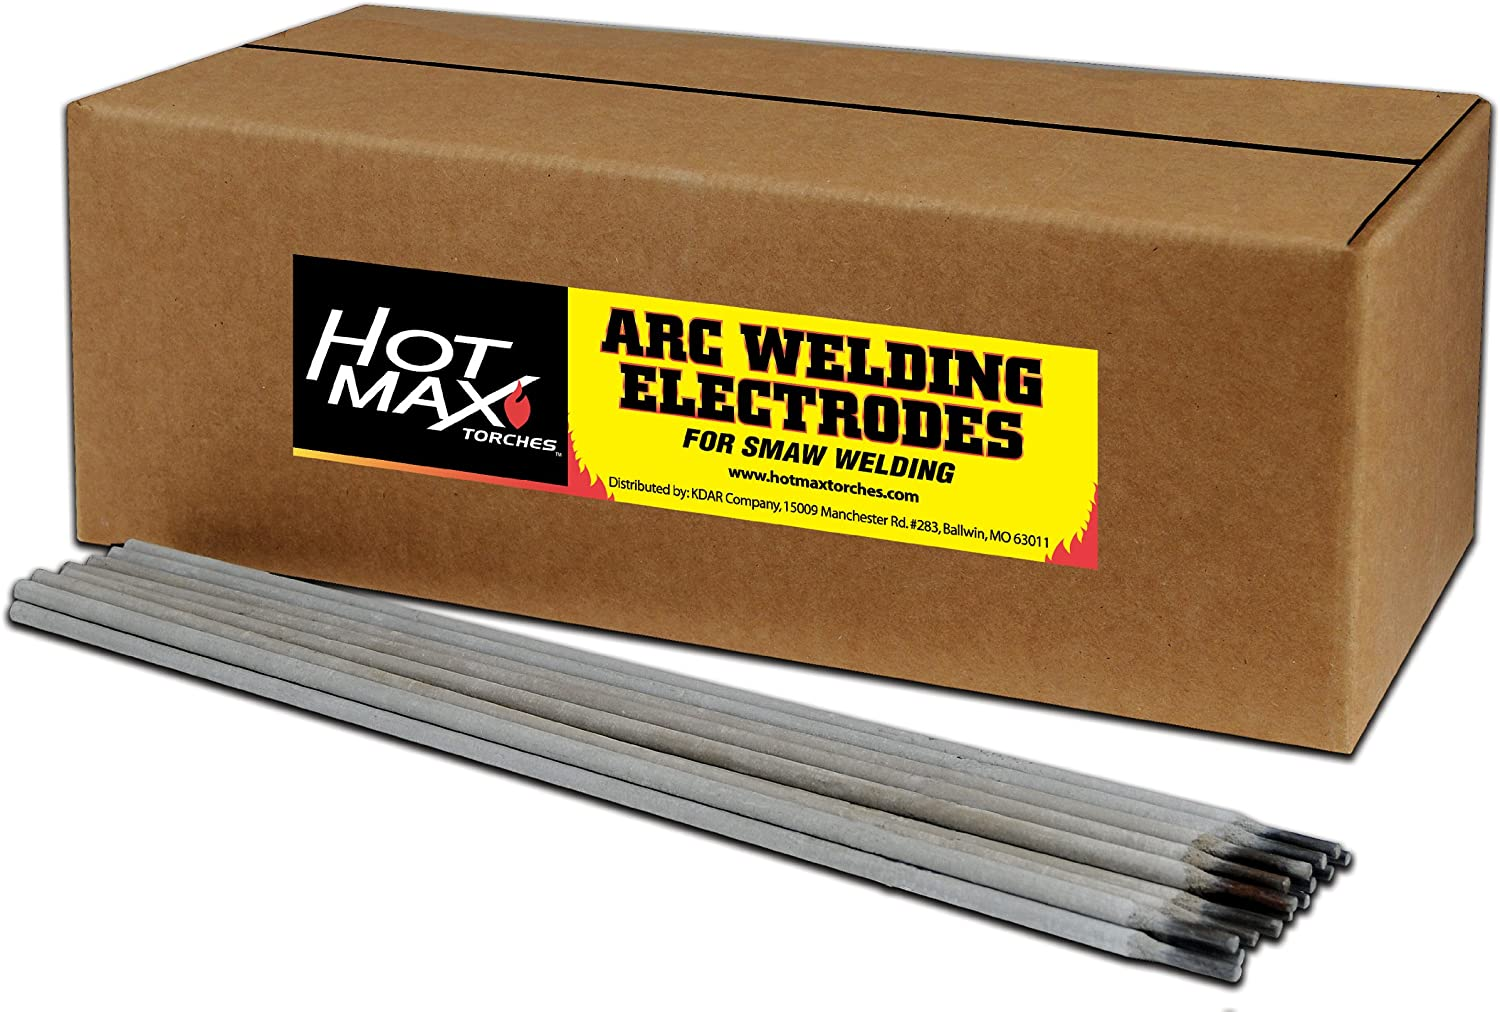 Hot Max 23048 1 8-Inch ARC E7014 5 ☆ very popular Electrodes 50# Welding Outstanding